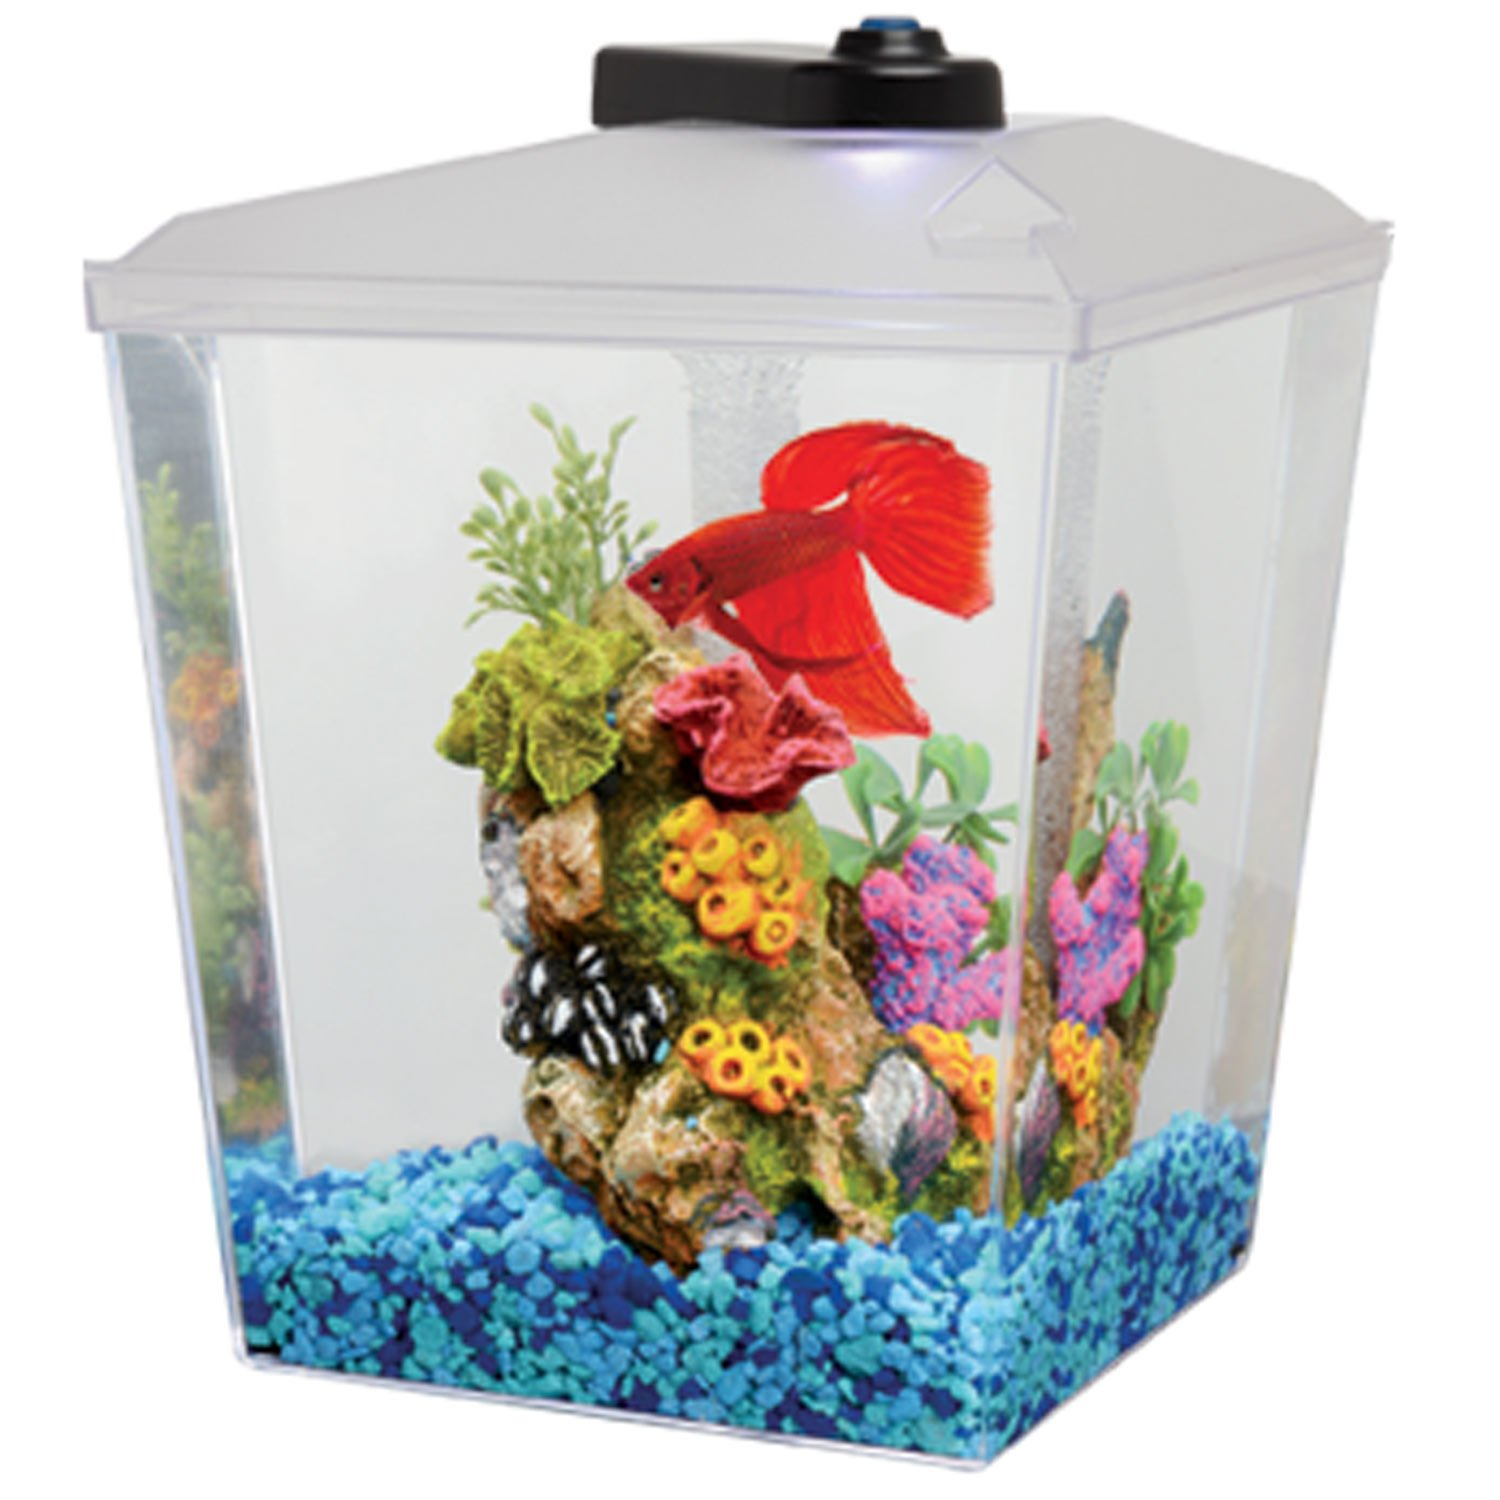 5 gallon fish tank petco description specifications for Betta fish tanks petco